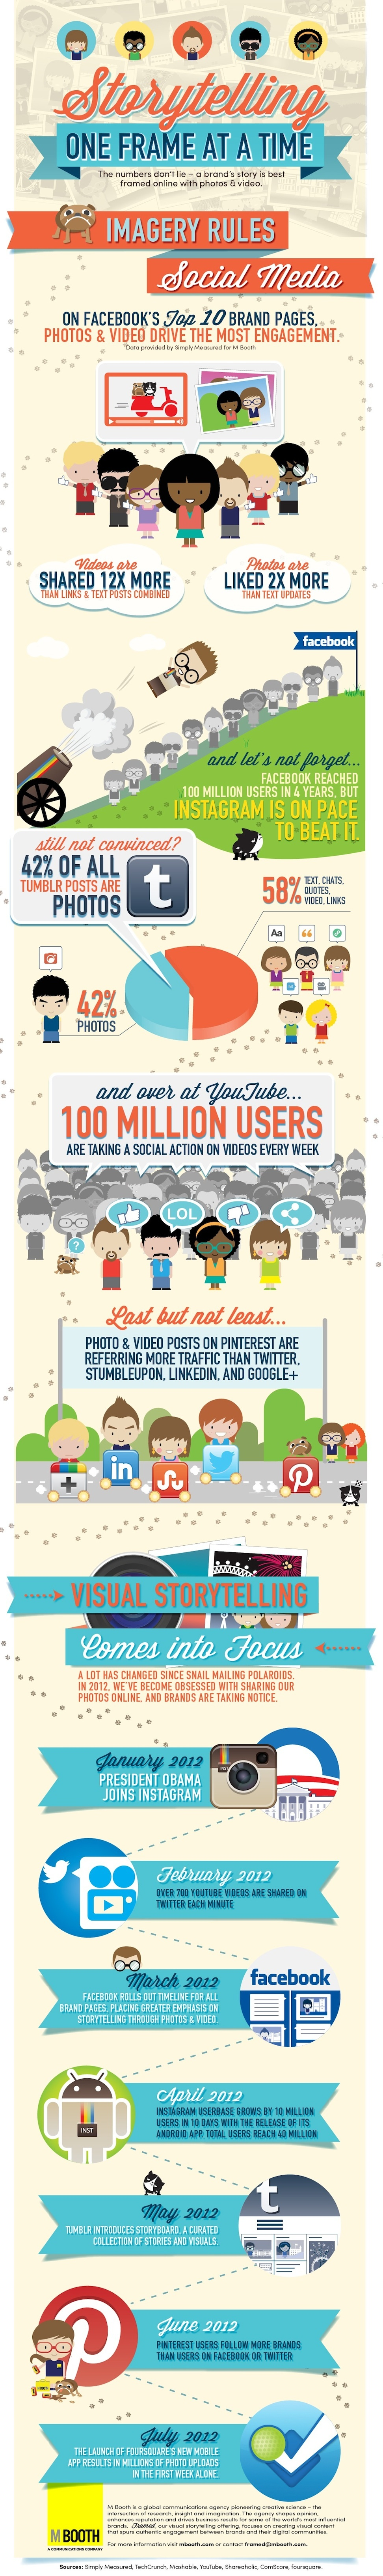 Imagery rules in social media.